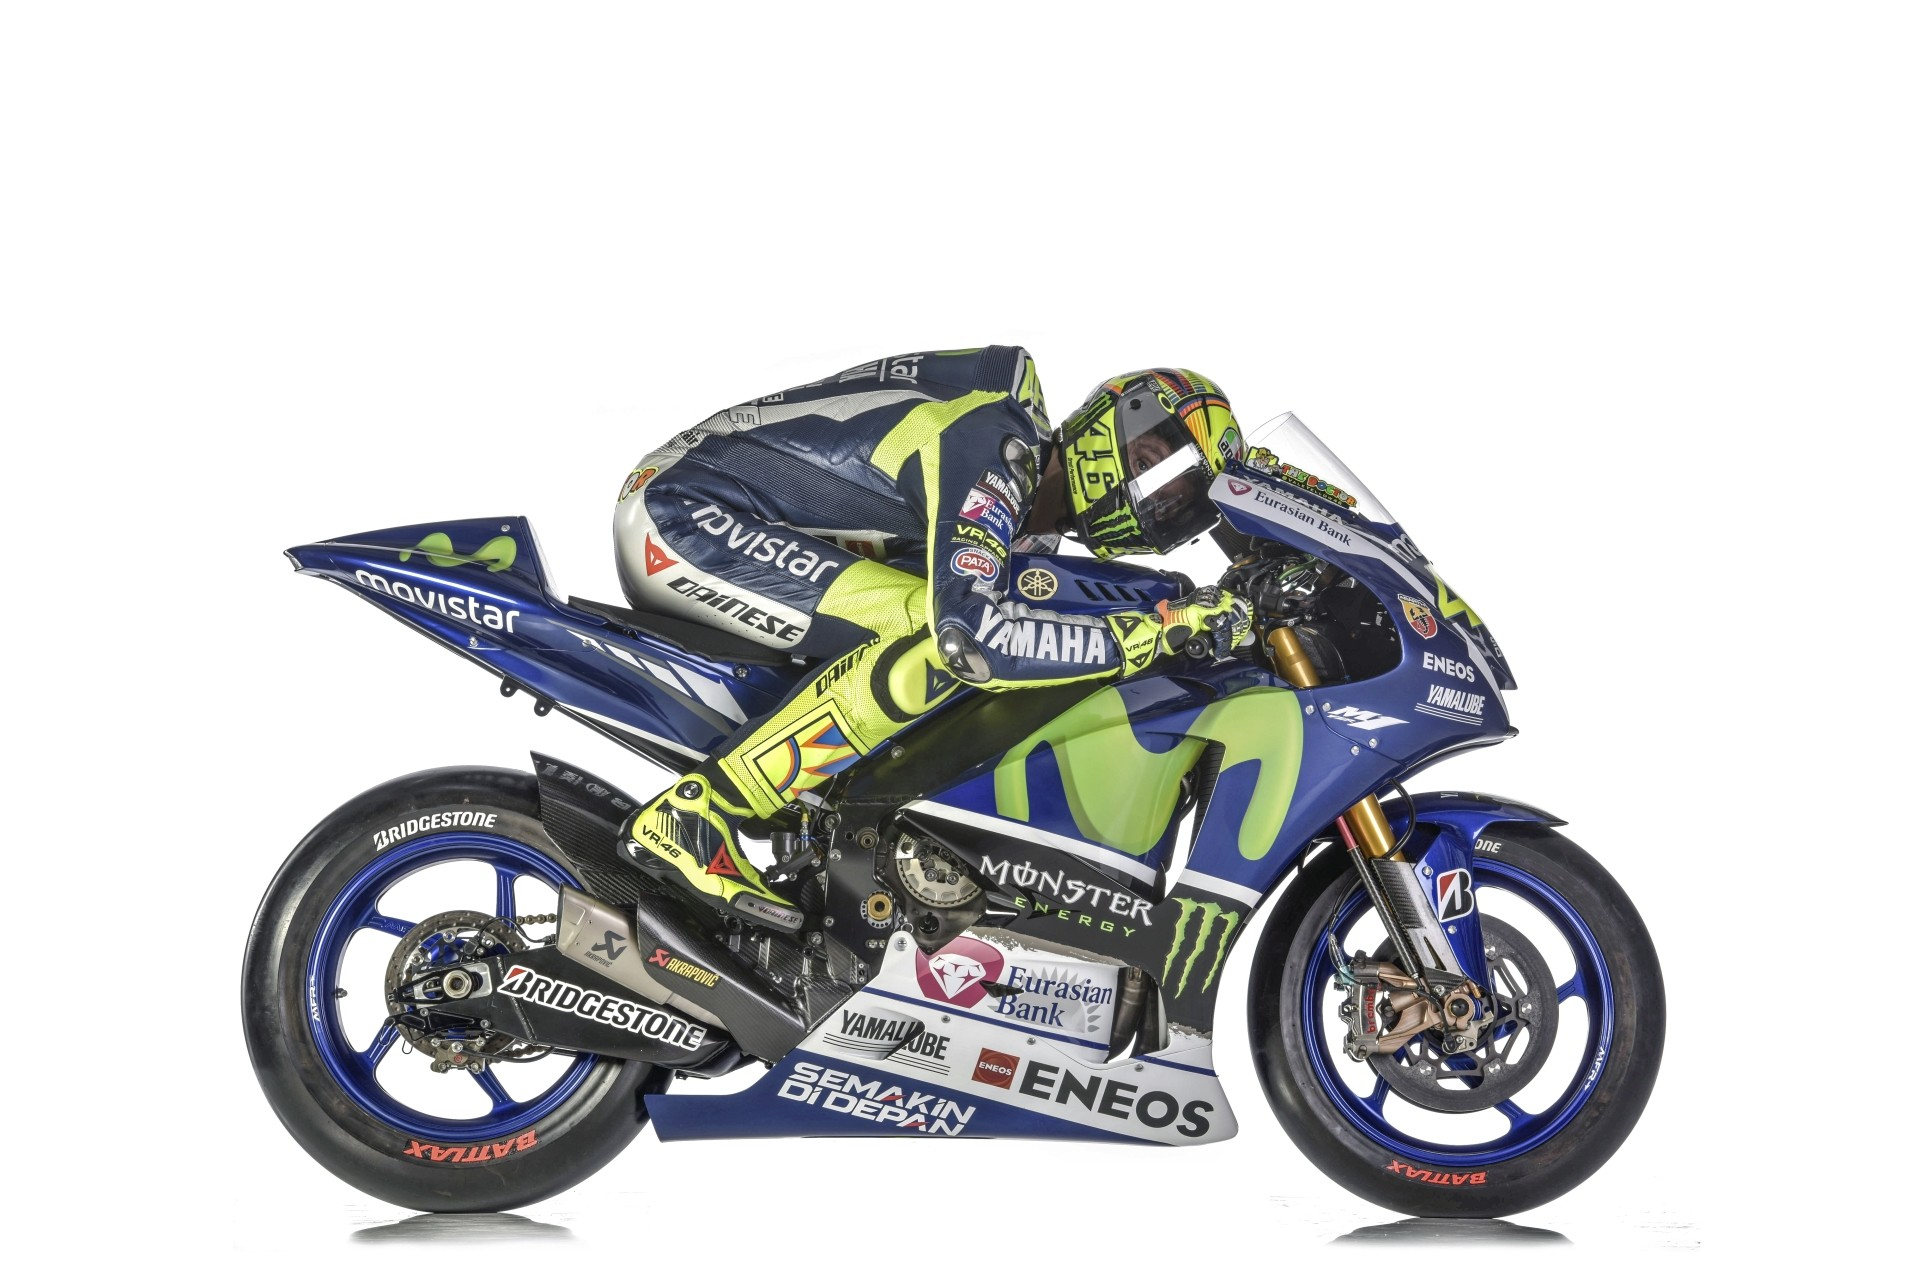 High-Res Photos of the 2015 Yamaha YZR-M1 with Rossi and Lorenzo - autoevolution